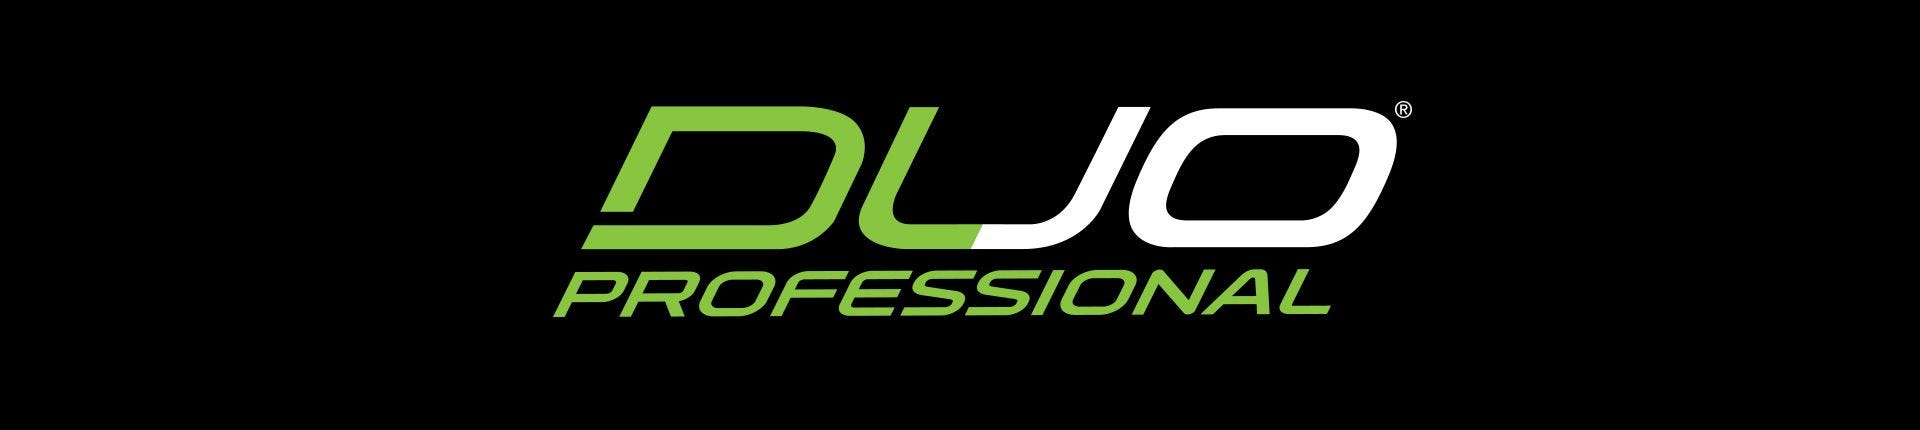 green duo professional logo on black background